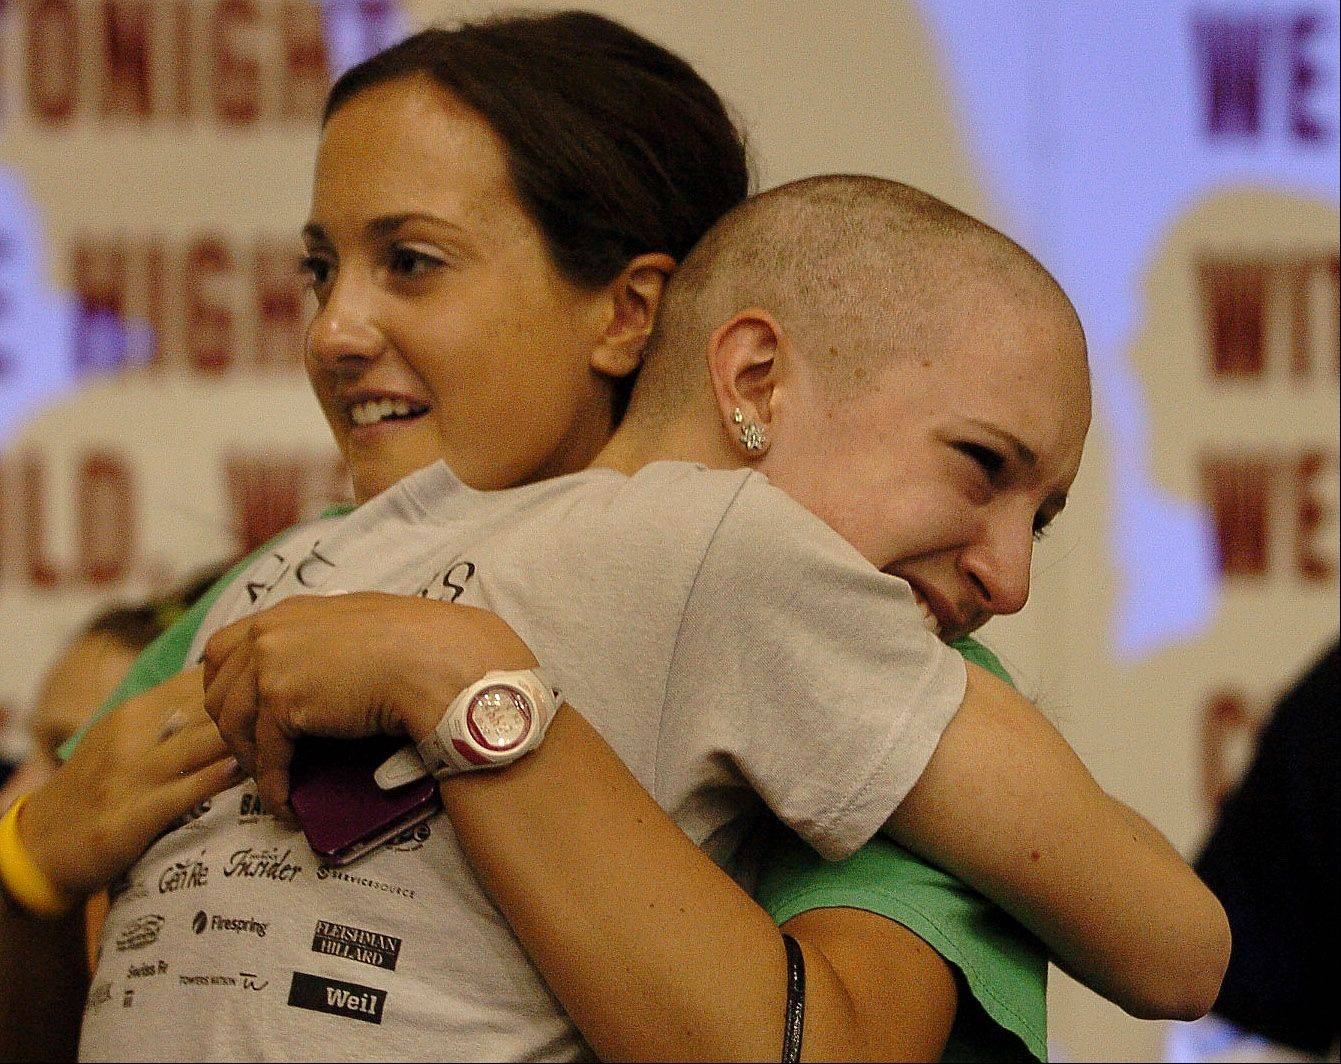 Erin Falsey gets hugged by her sister Collette, left, who had cancer as a child. Erin raised $3300. in her sisters name at the St. Baldrick's head shaving event at Schaumburg High School.